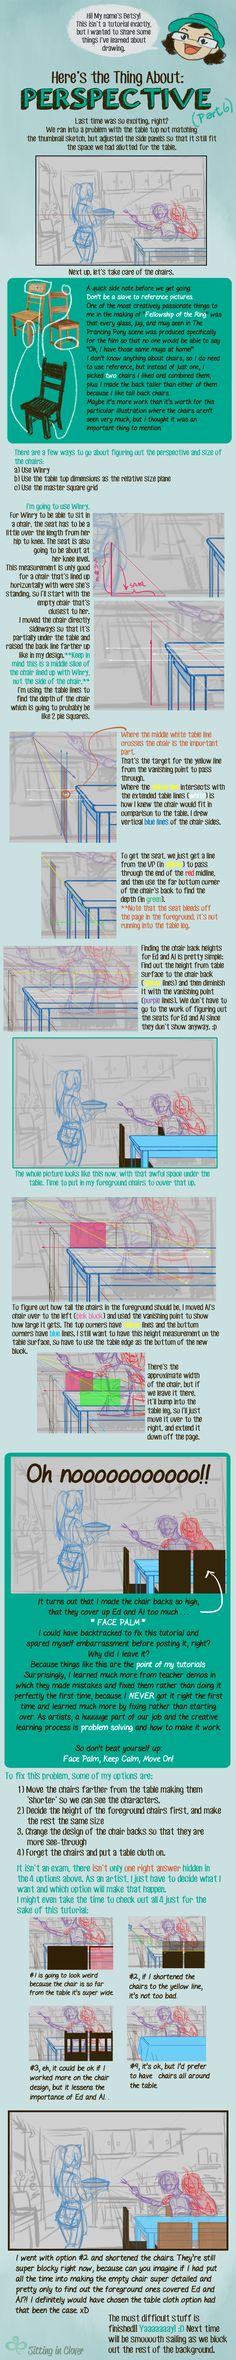 06 Here's the Thing About 1pt Perspective by betsyillustration on DeviantArt